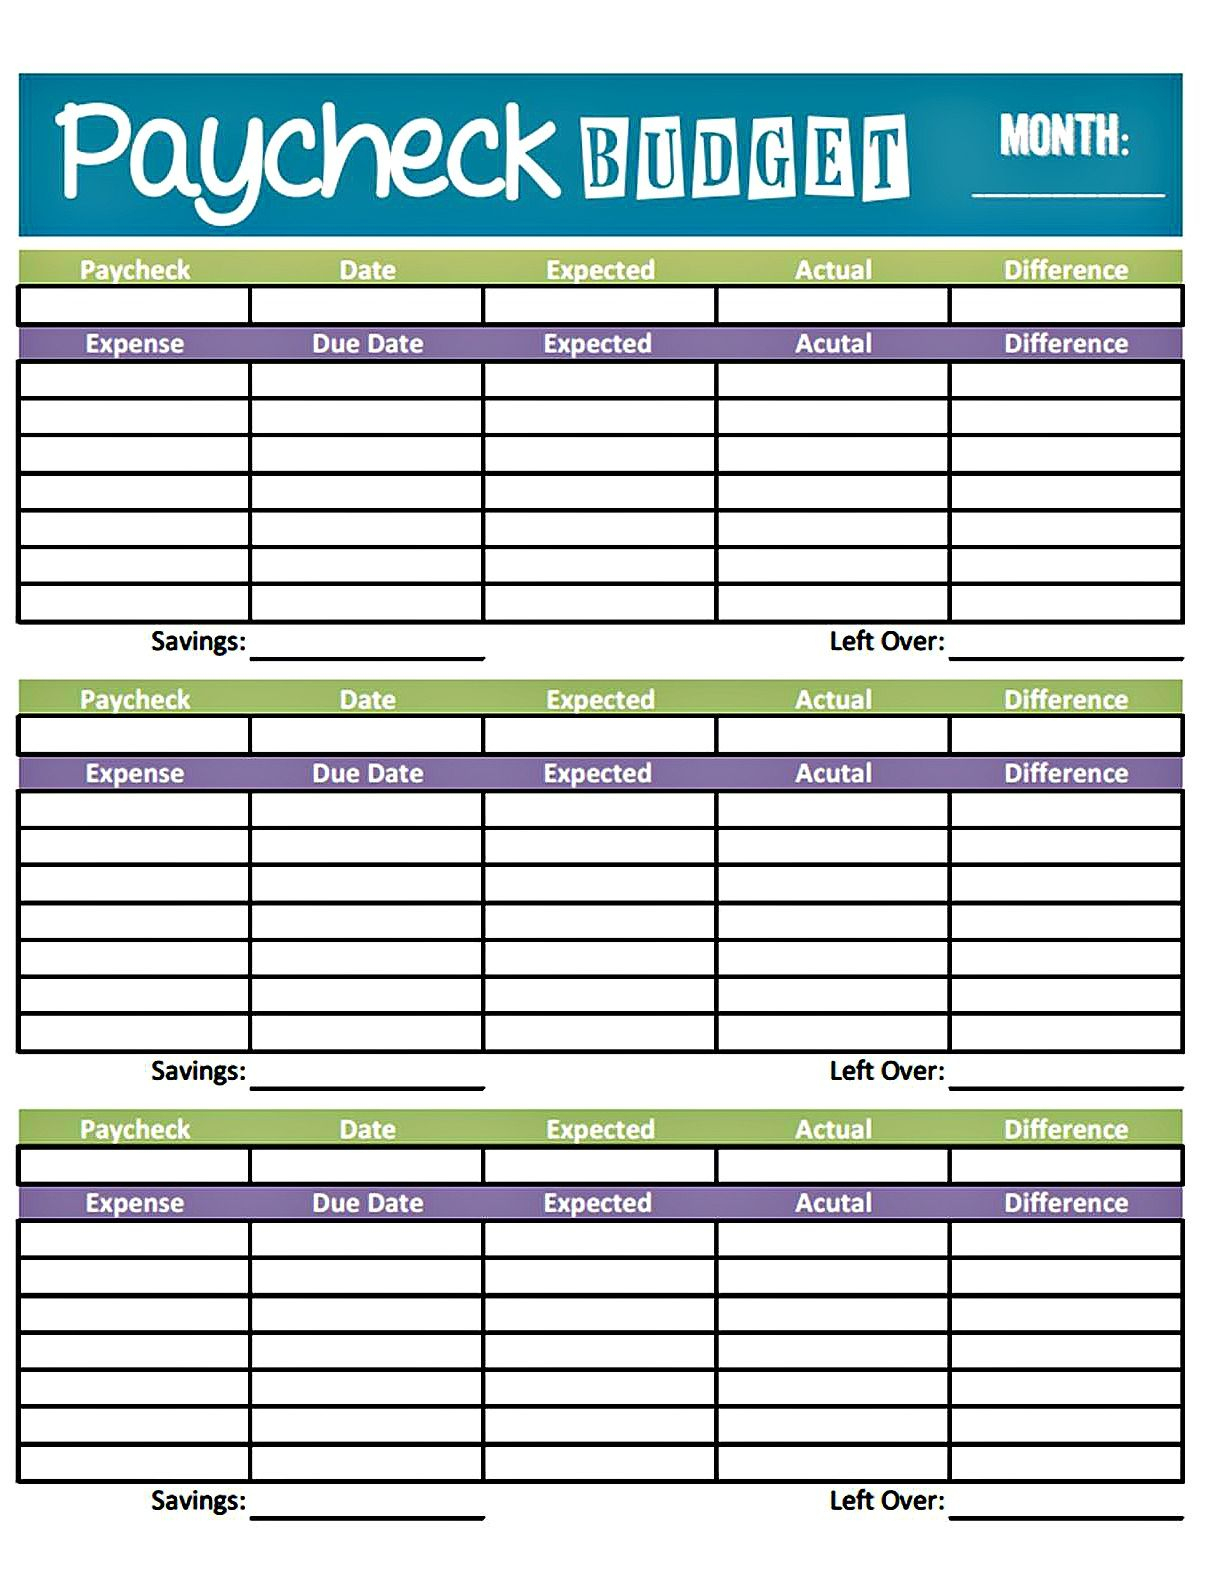 Budget Worksheet Printable | Get Paid Weekly And Charlie Gets Paid - Free Printable Bi Weekly Budget Template